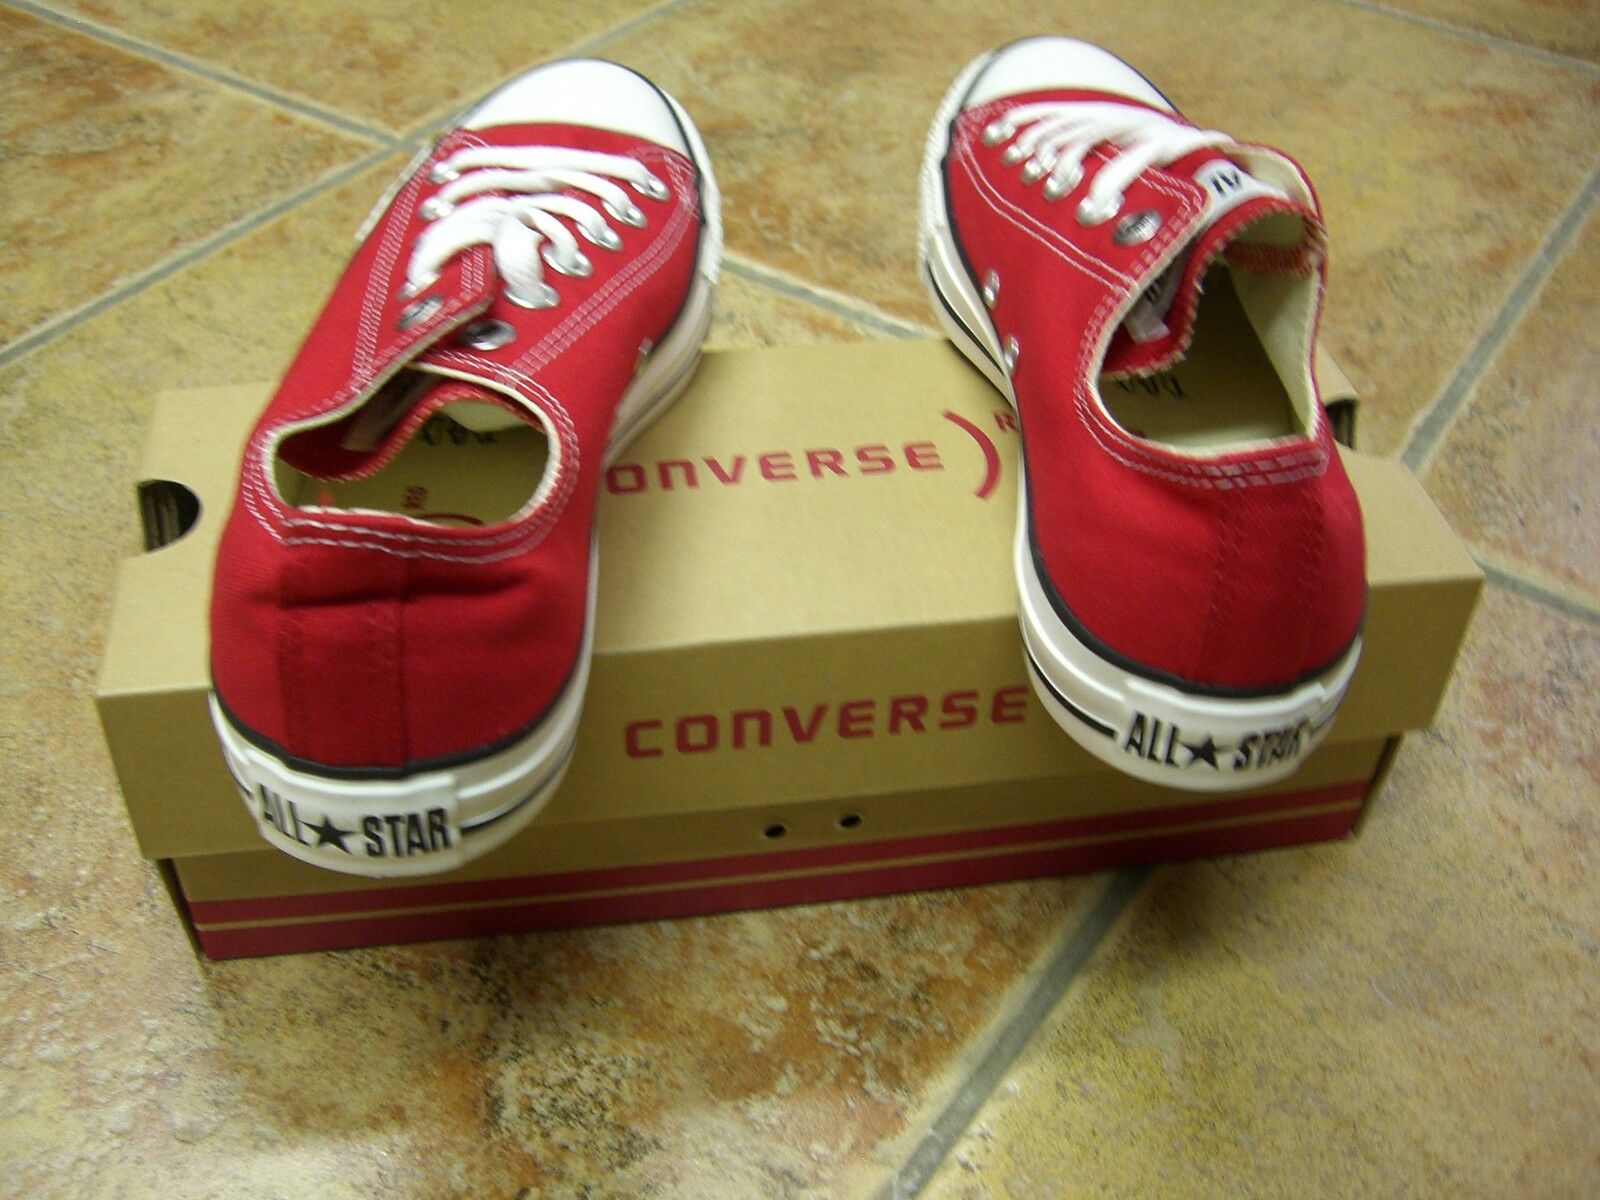 Converse  Chucks  All Star  OX  Gr.43  Red  Rot  M9696  Neu  Super Trendy